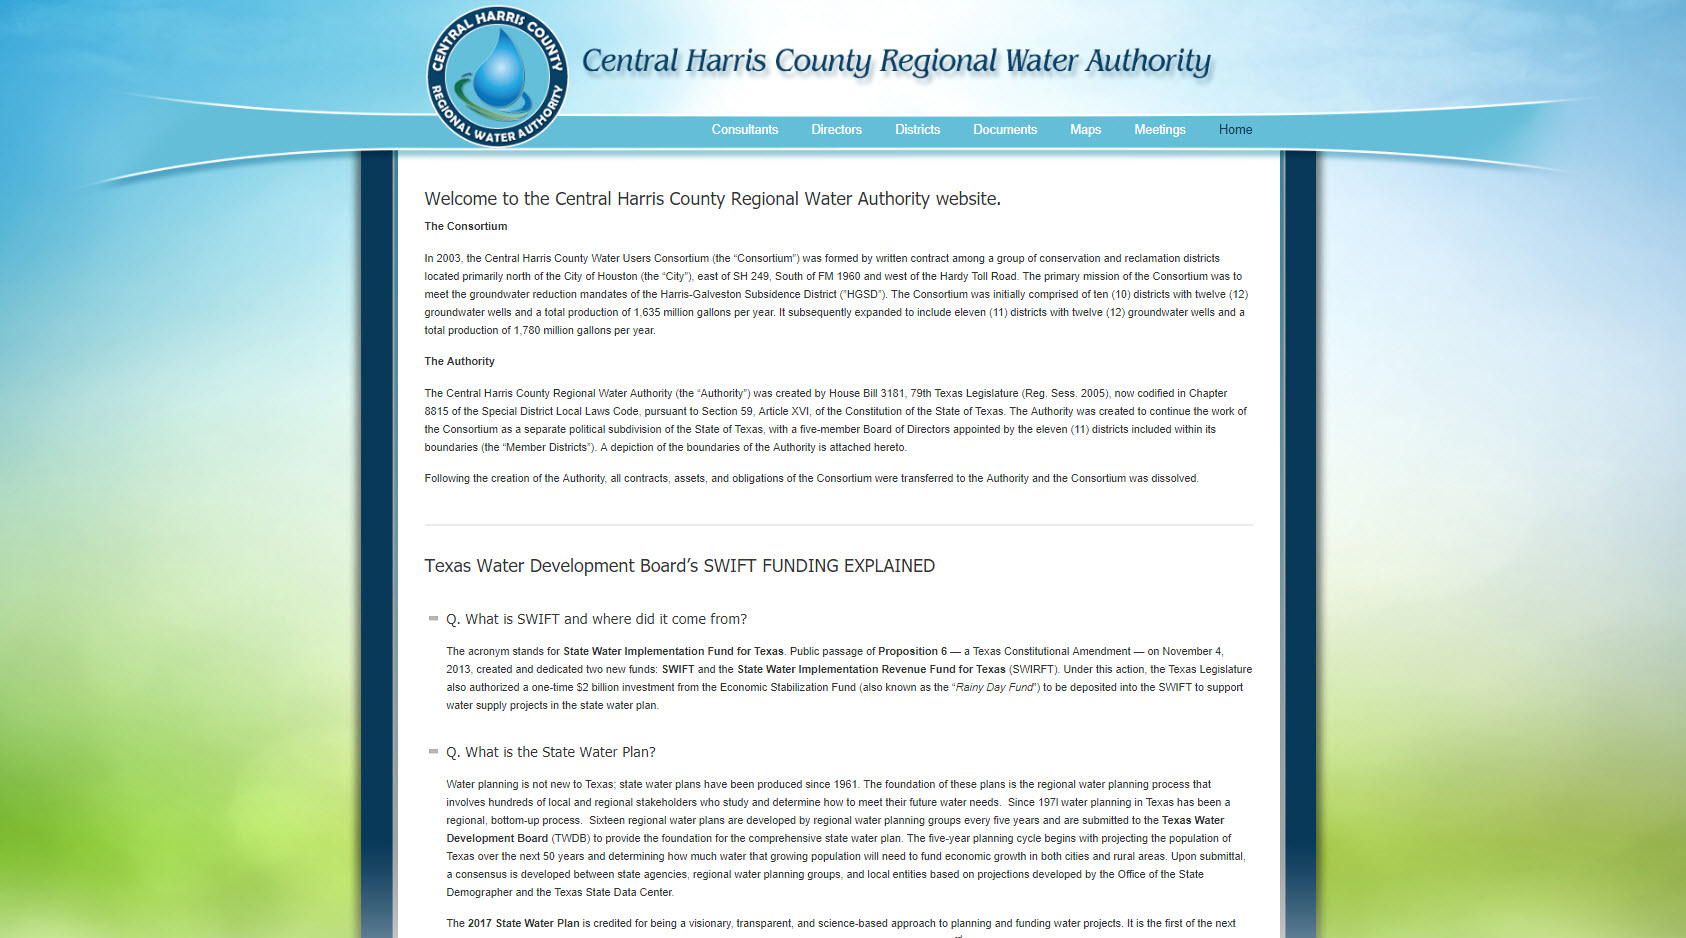 Central Harris County Regional Water Authority (CHCRWA)